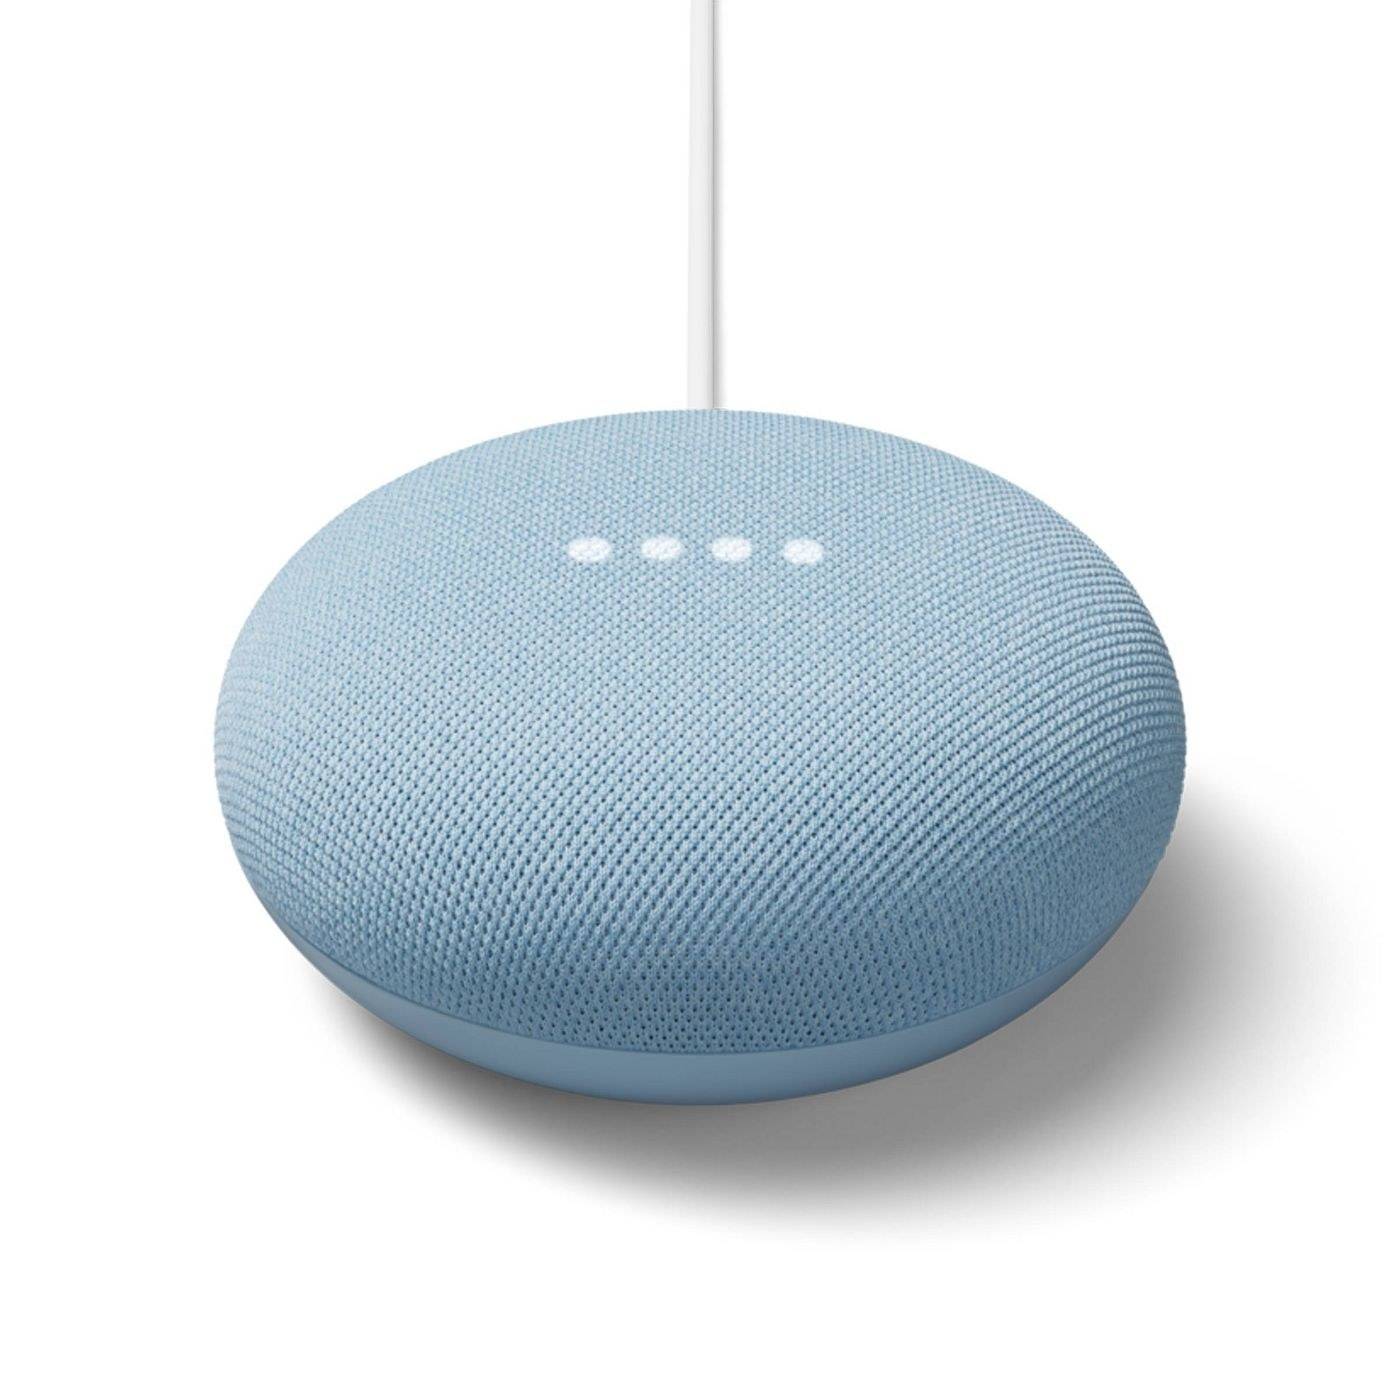 The sky blue Google Nest mini